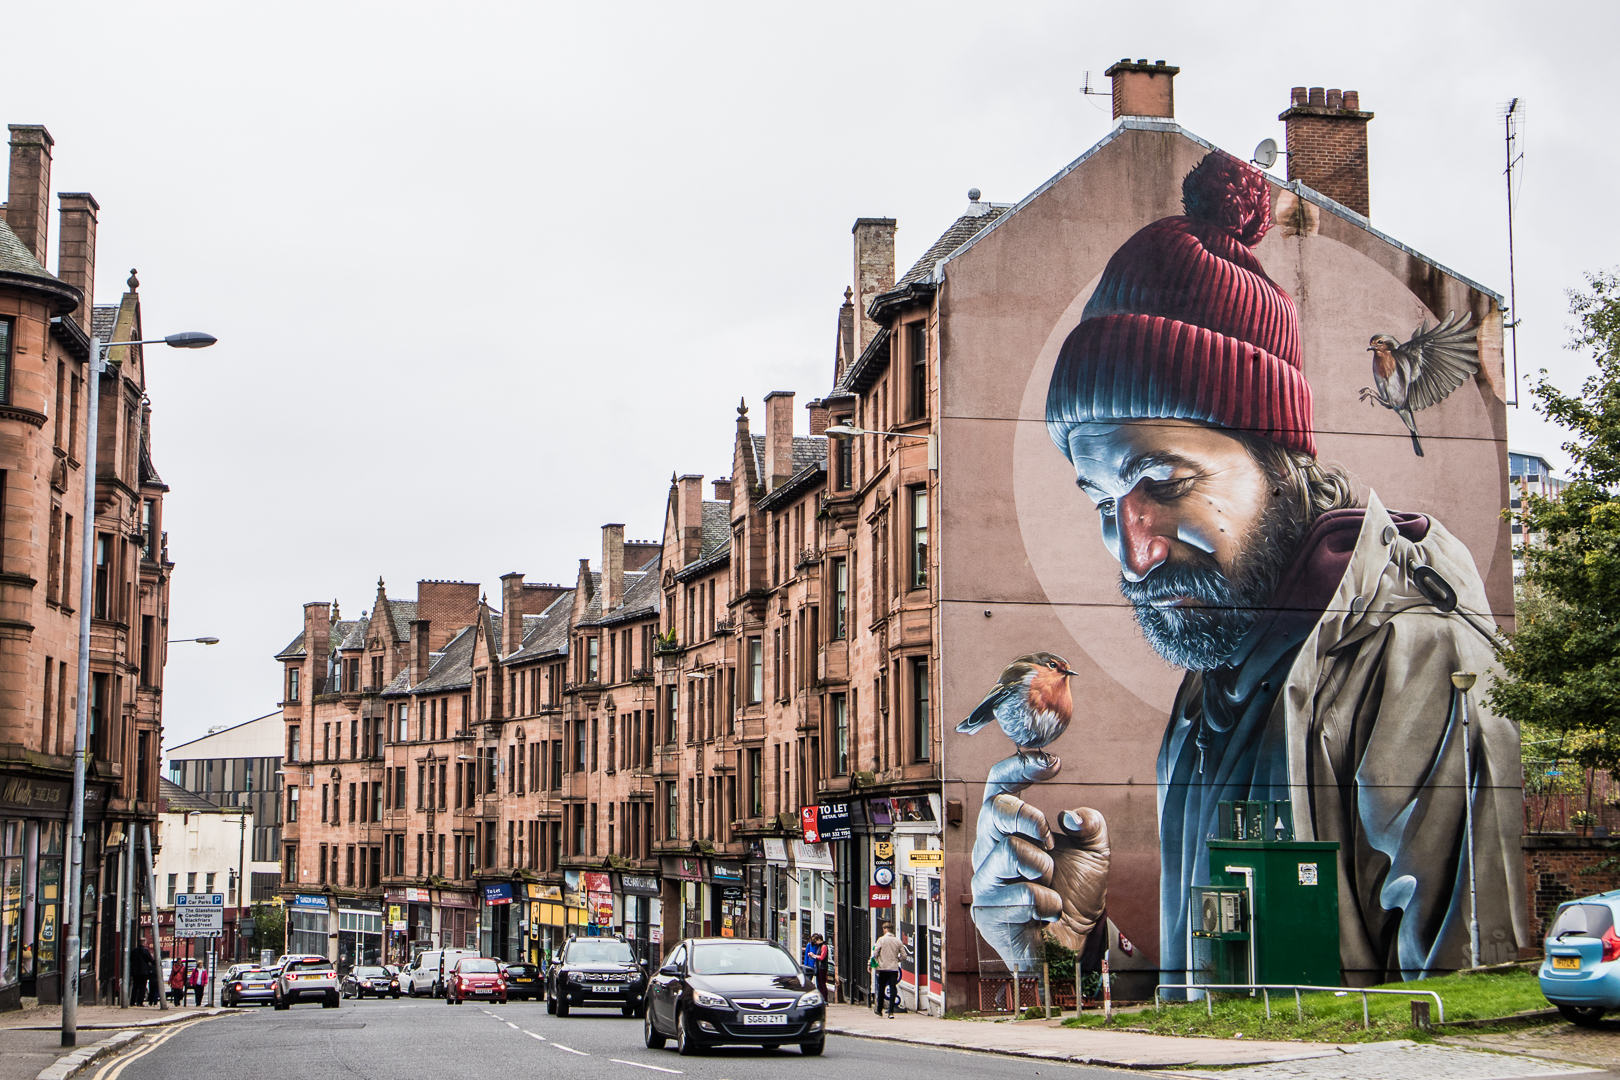 Discover gorgeous street art throughout Glasgow. The city council even offers a handy map.